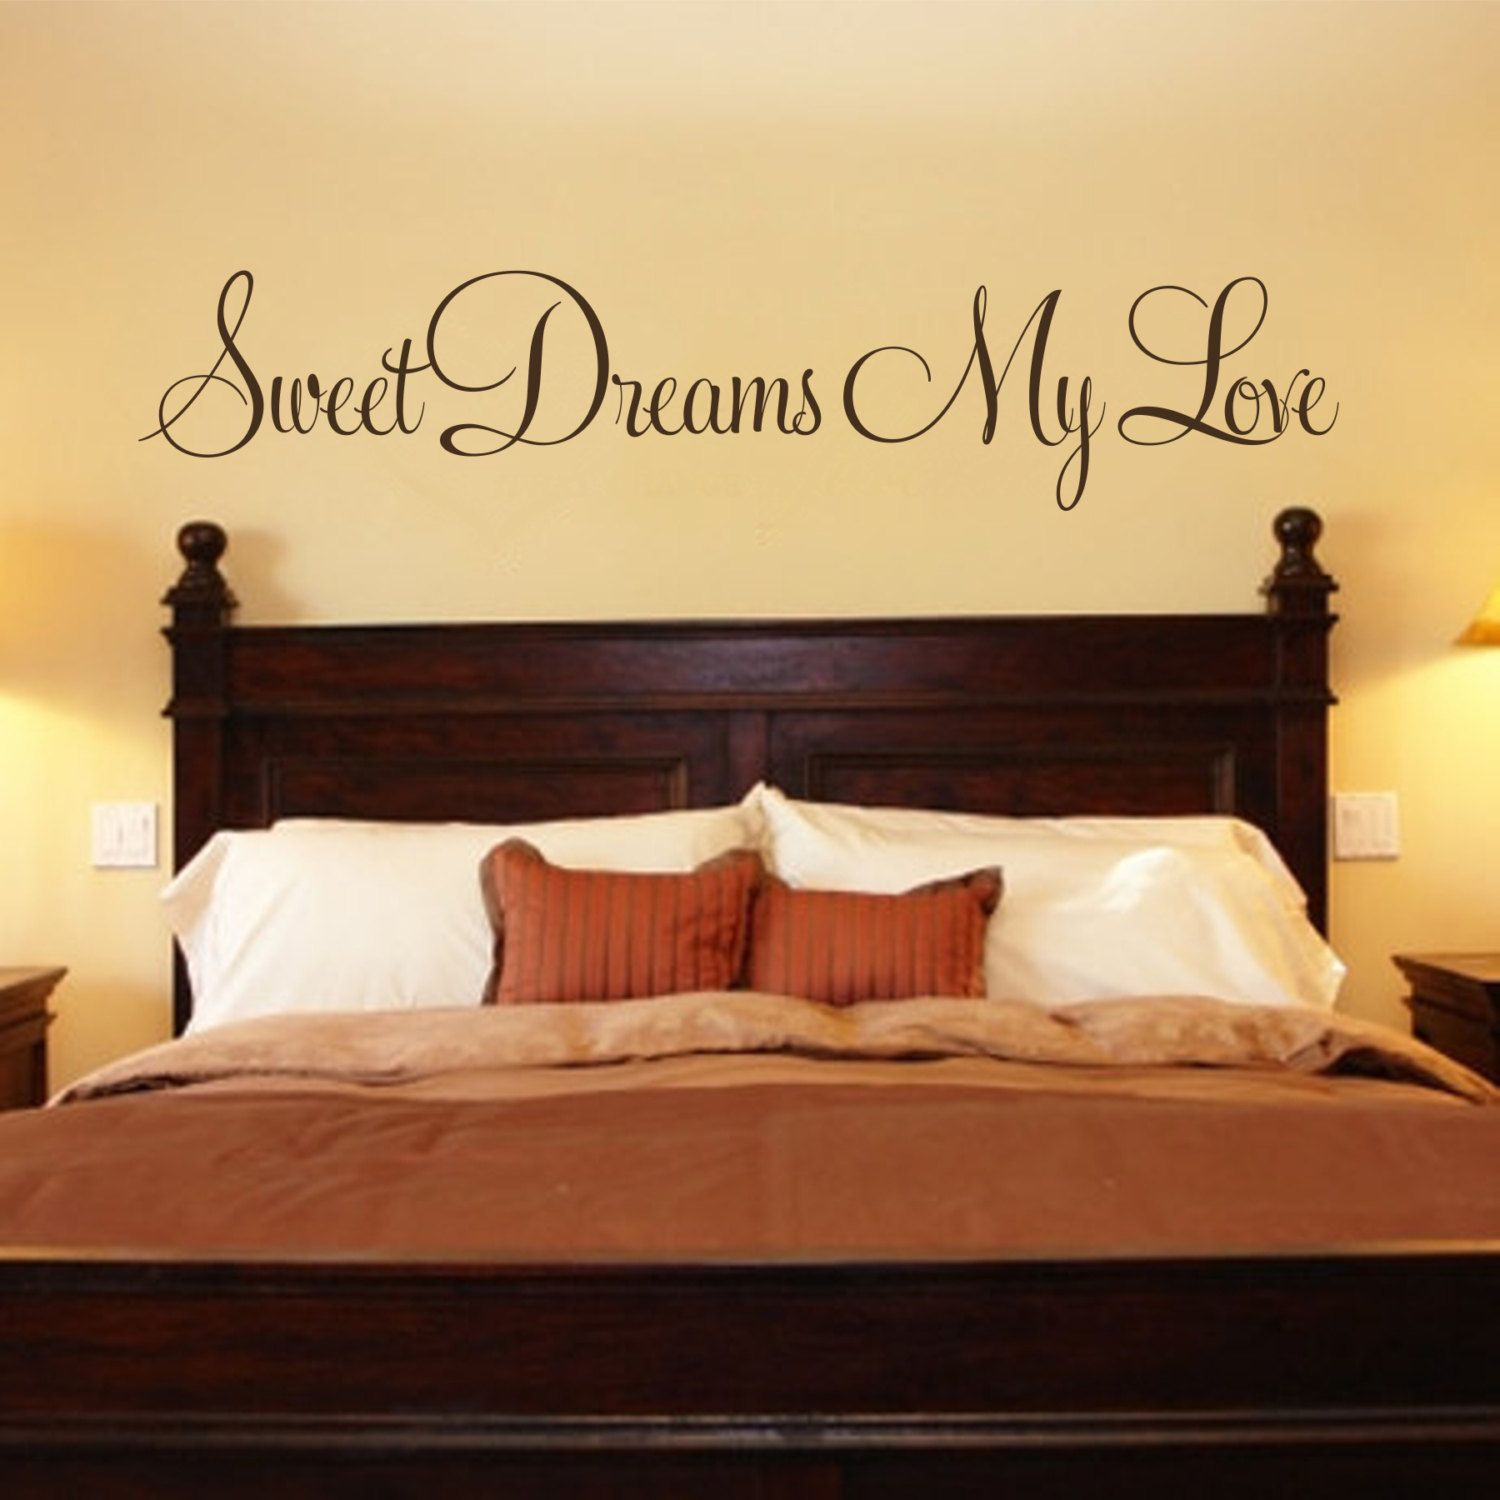 Beautiful Love Wall Decor Bedroom Frieze - Wall Art Collections ...